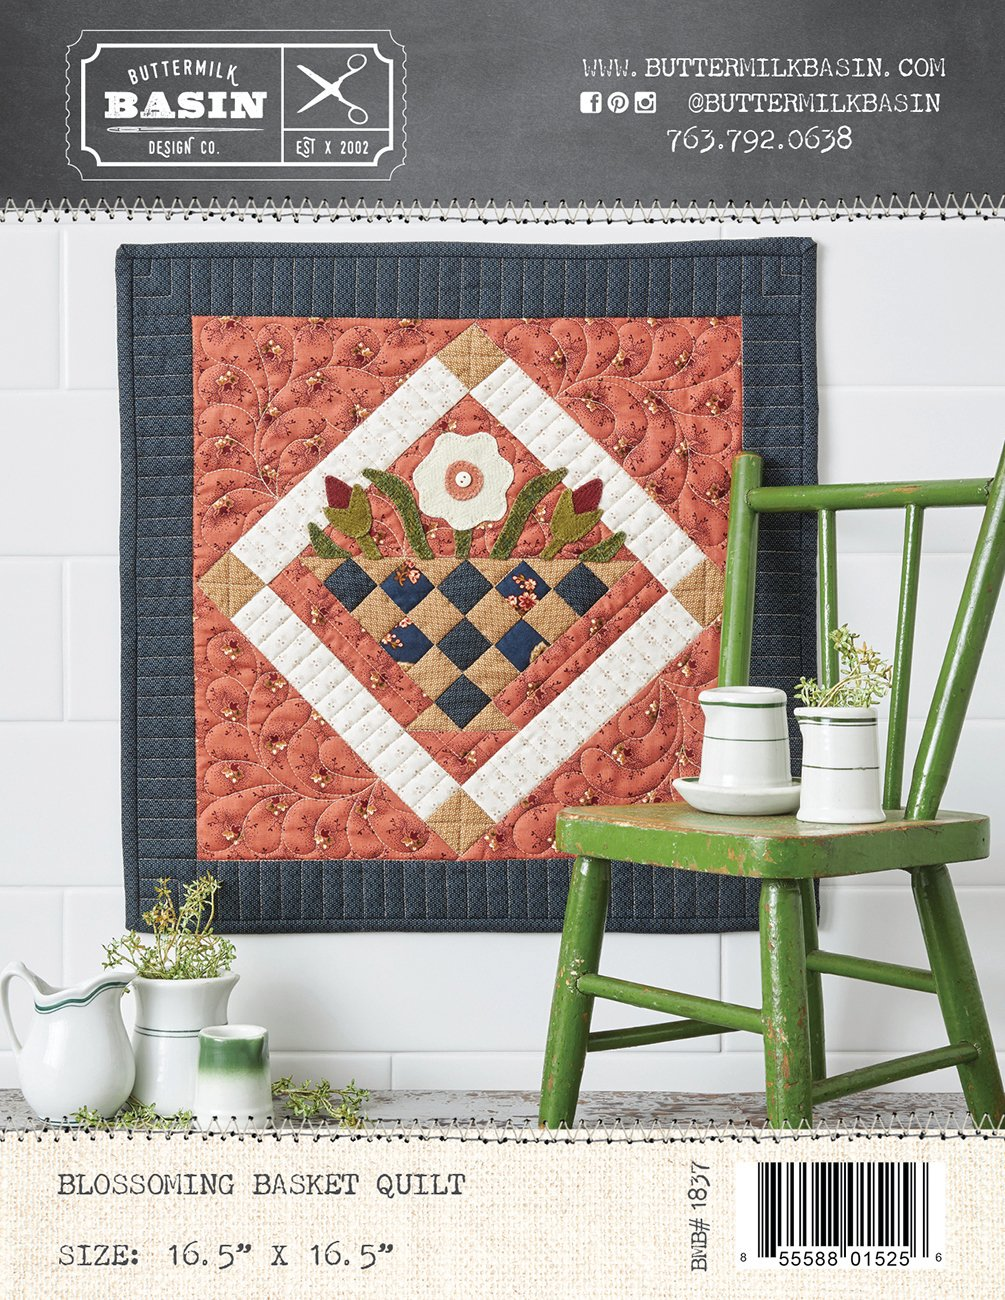 Blossoming Basket Quilt *Kit & Pattern